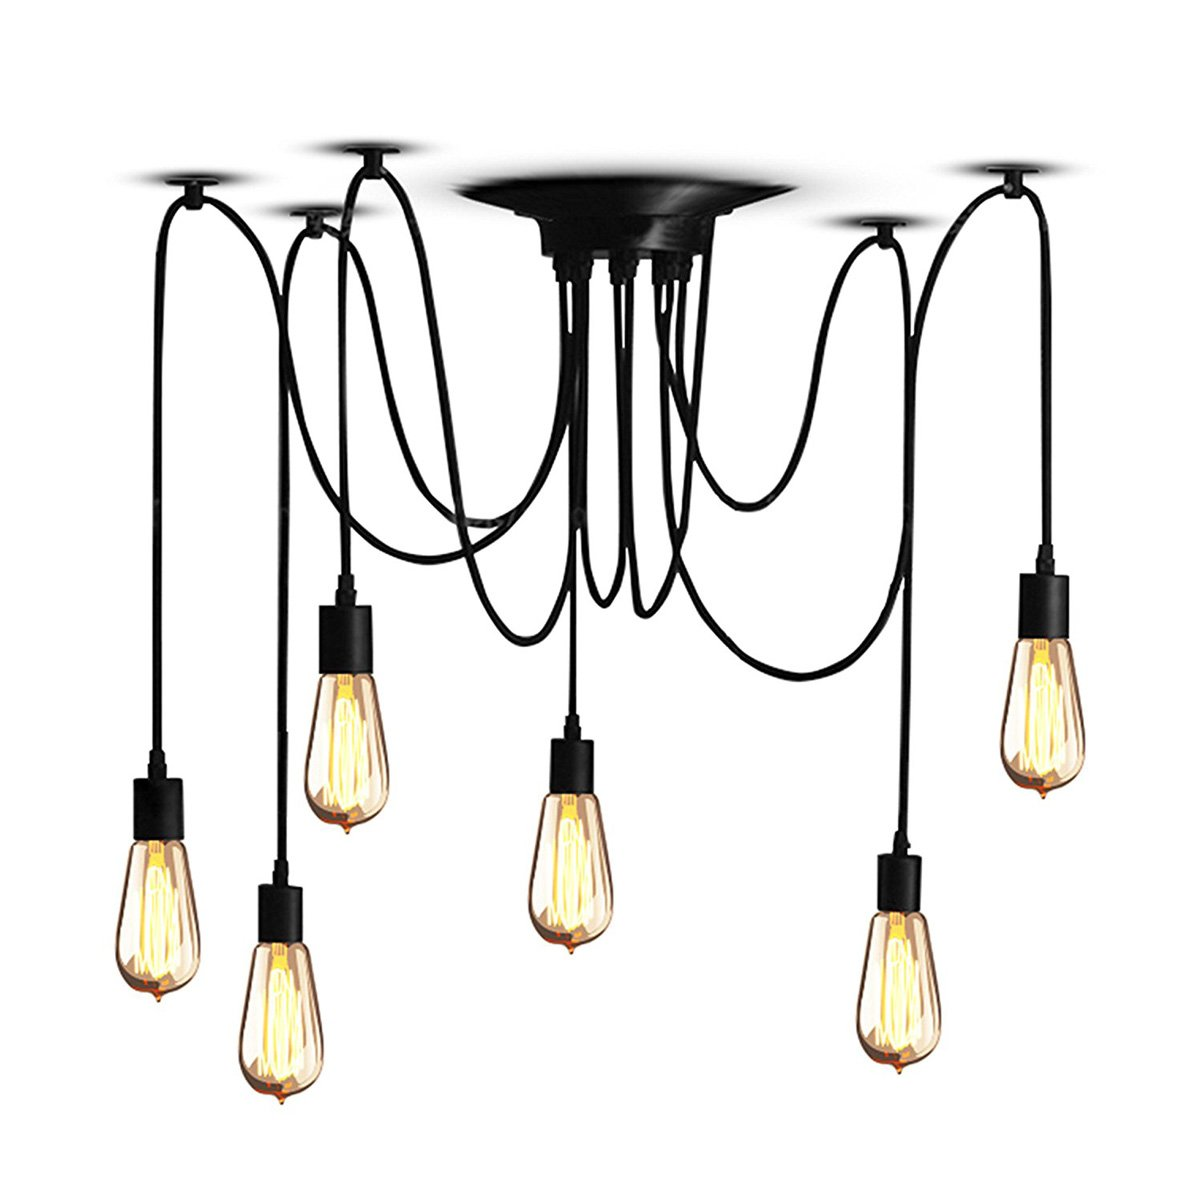 XHJJDJ 6 Arms(each With 1.5m Wire) Antique Classic DIY Ceiling Spider Lamp Light E27 Bulb Base Socket Retro Chandelier Dining Hall Bedroom Hotel